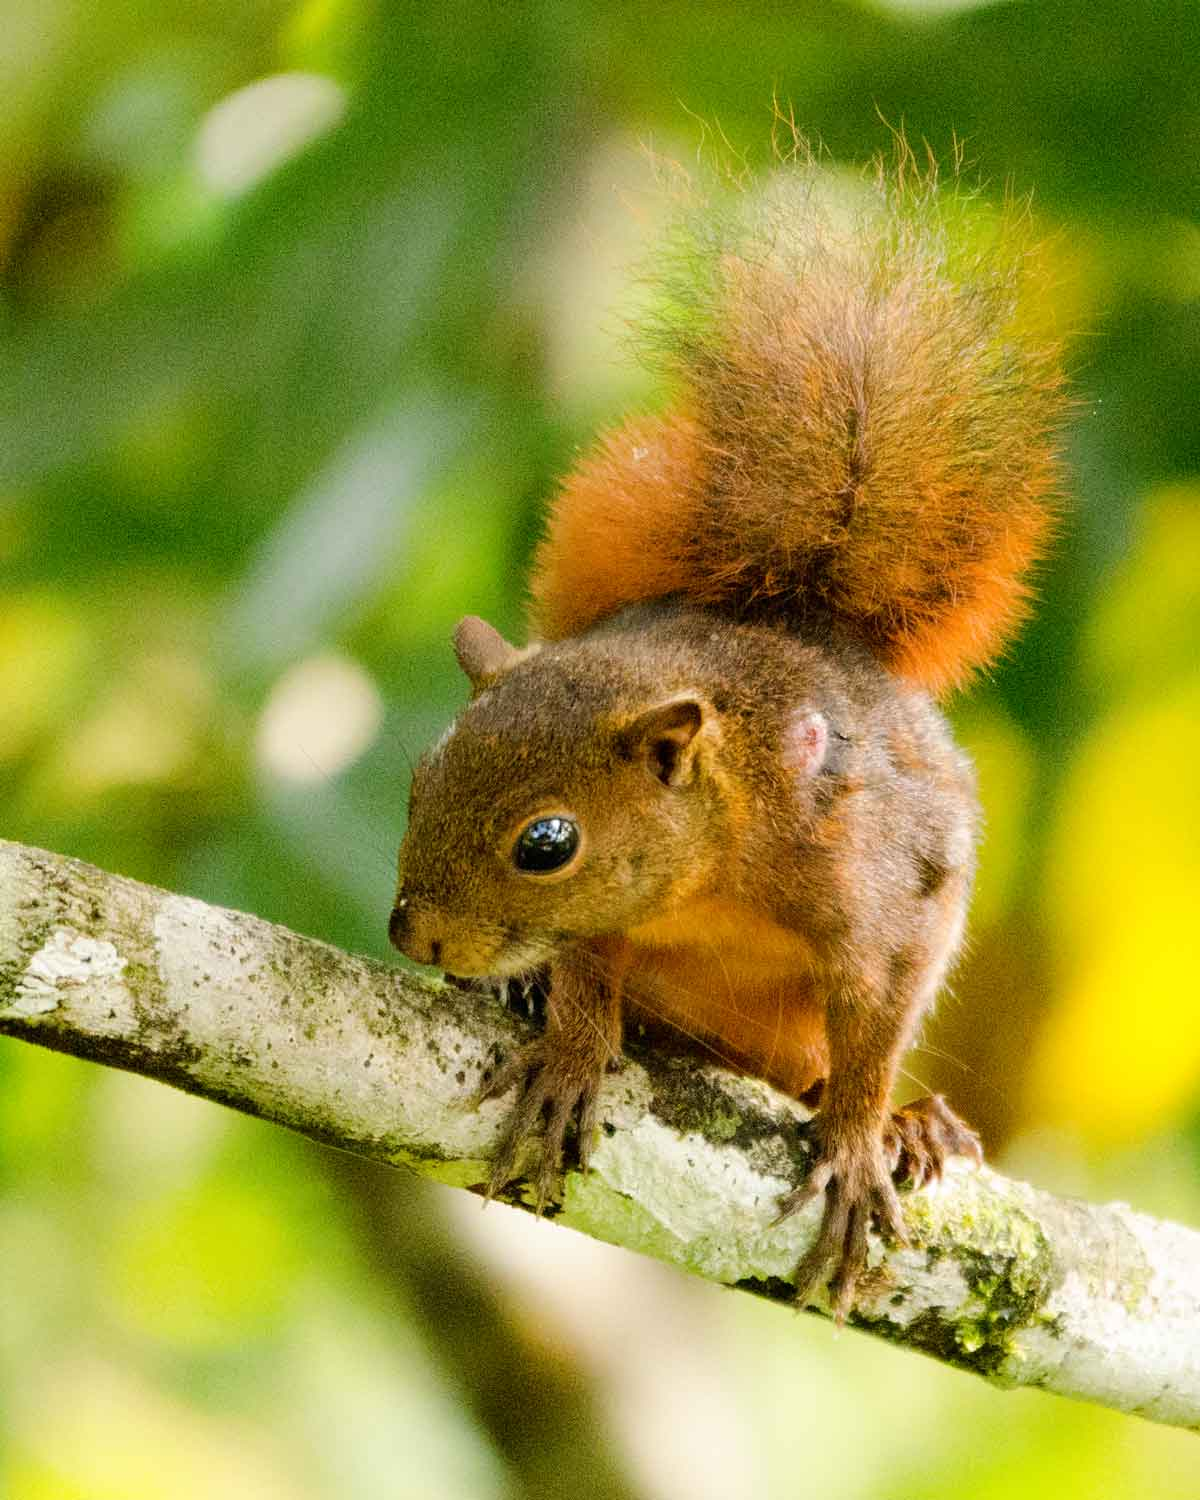 An unidentified squirrel at Ecolodge San Jorge de Milpe | ©Angela Drake